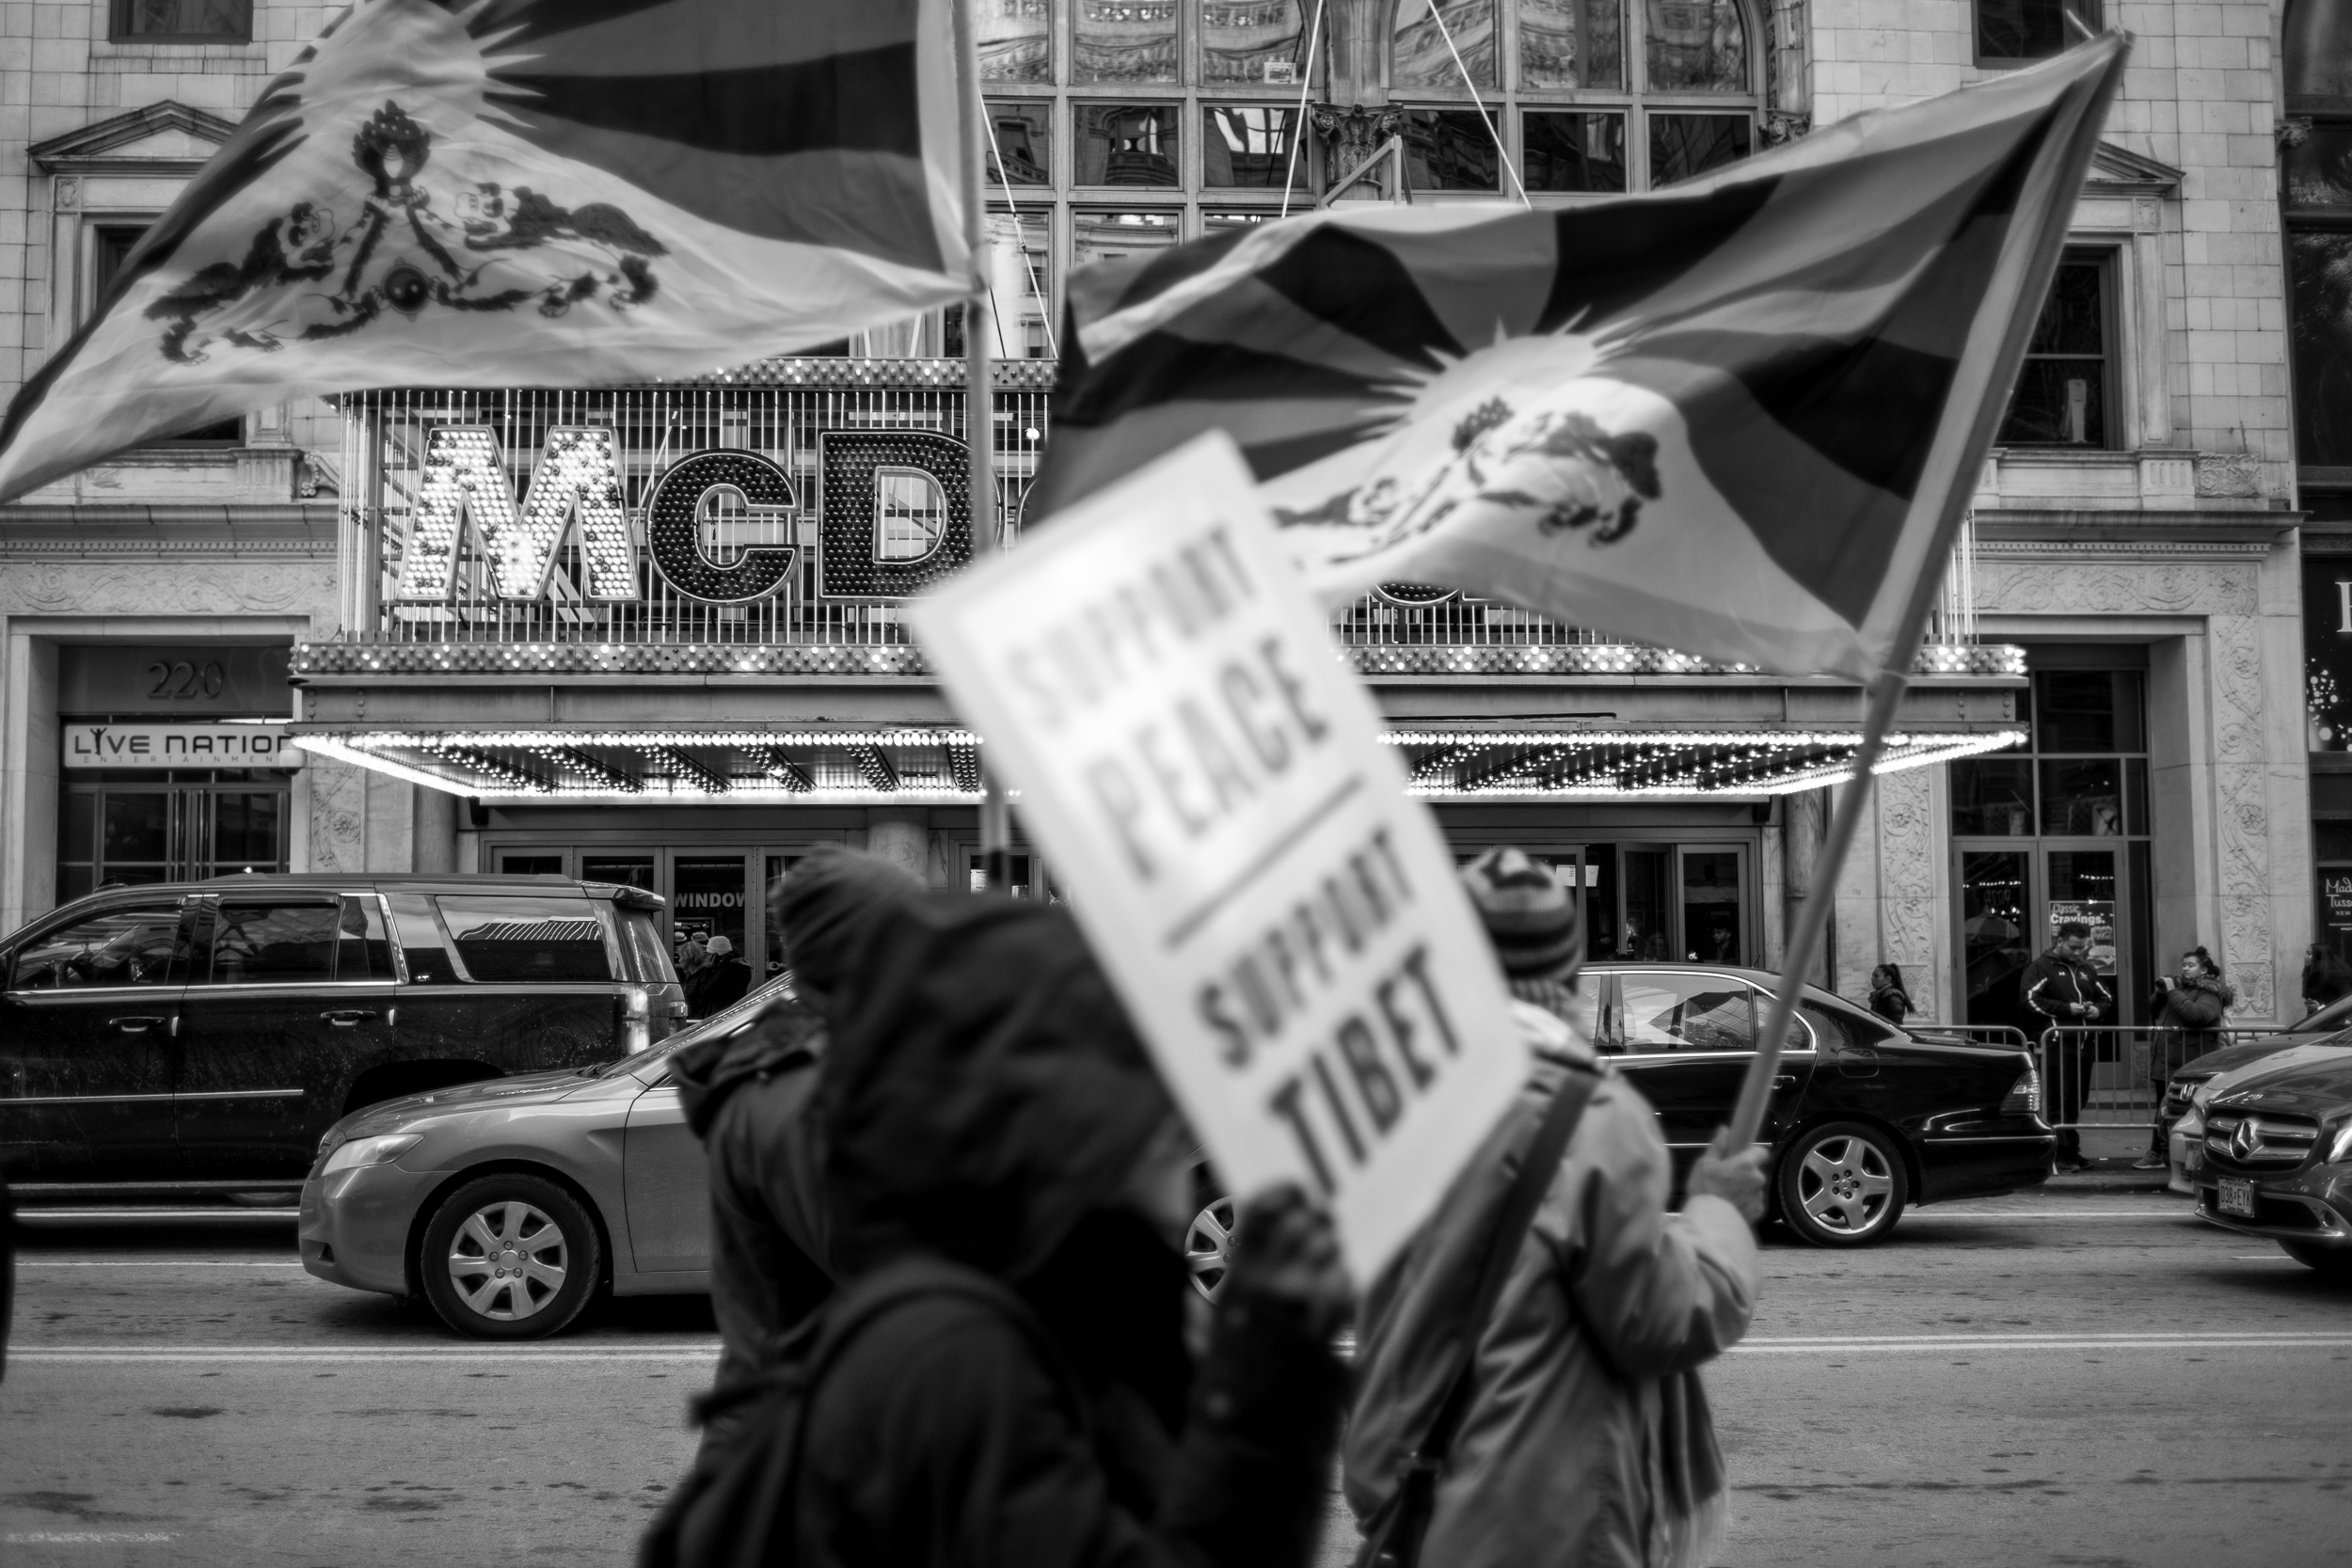 Pro-Tibet rally participants march in front of one of America's icons of global consumerism.... McDonalds. Leica M10 with 35mm Summicron f/2.